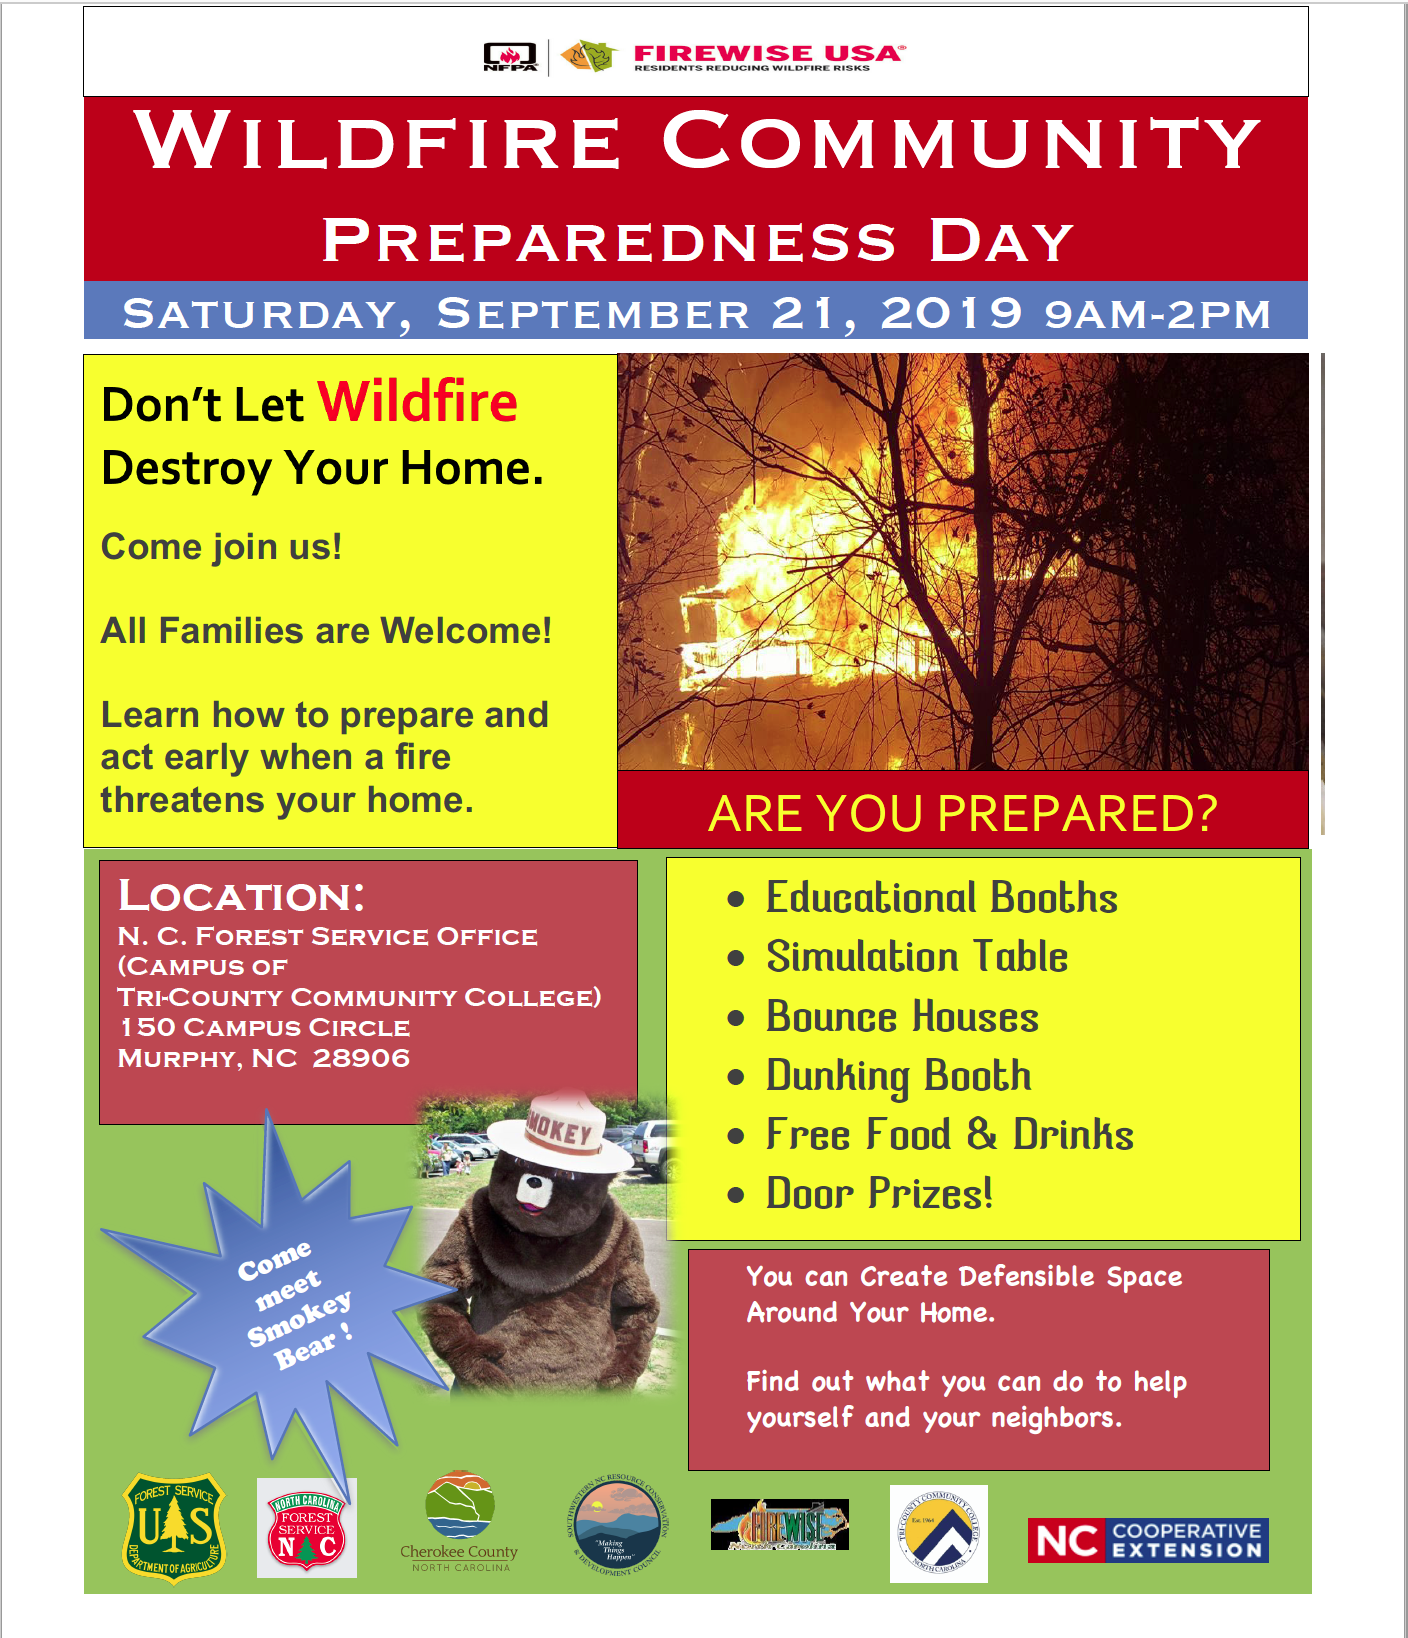 Wildfire Community Preparedness Day